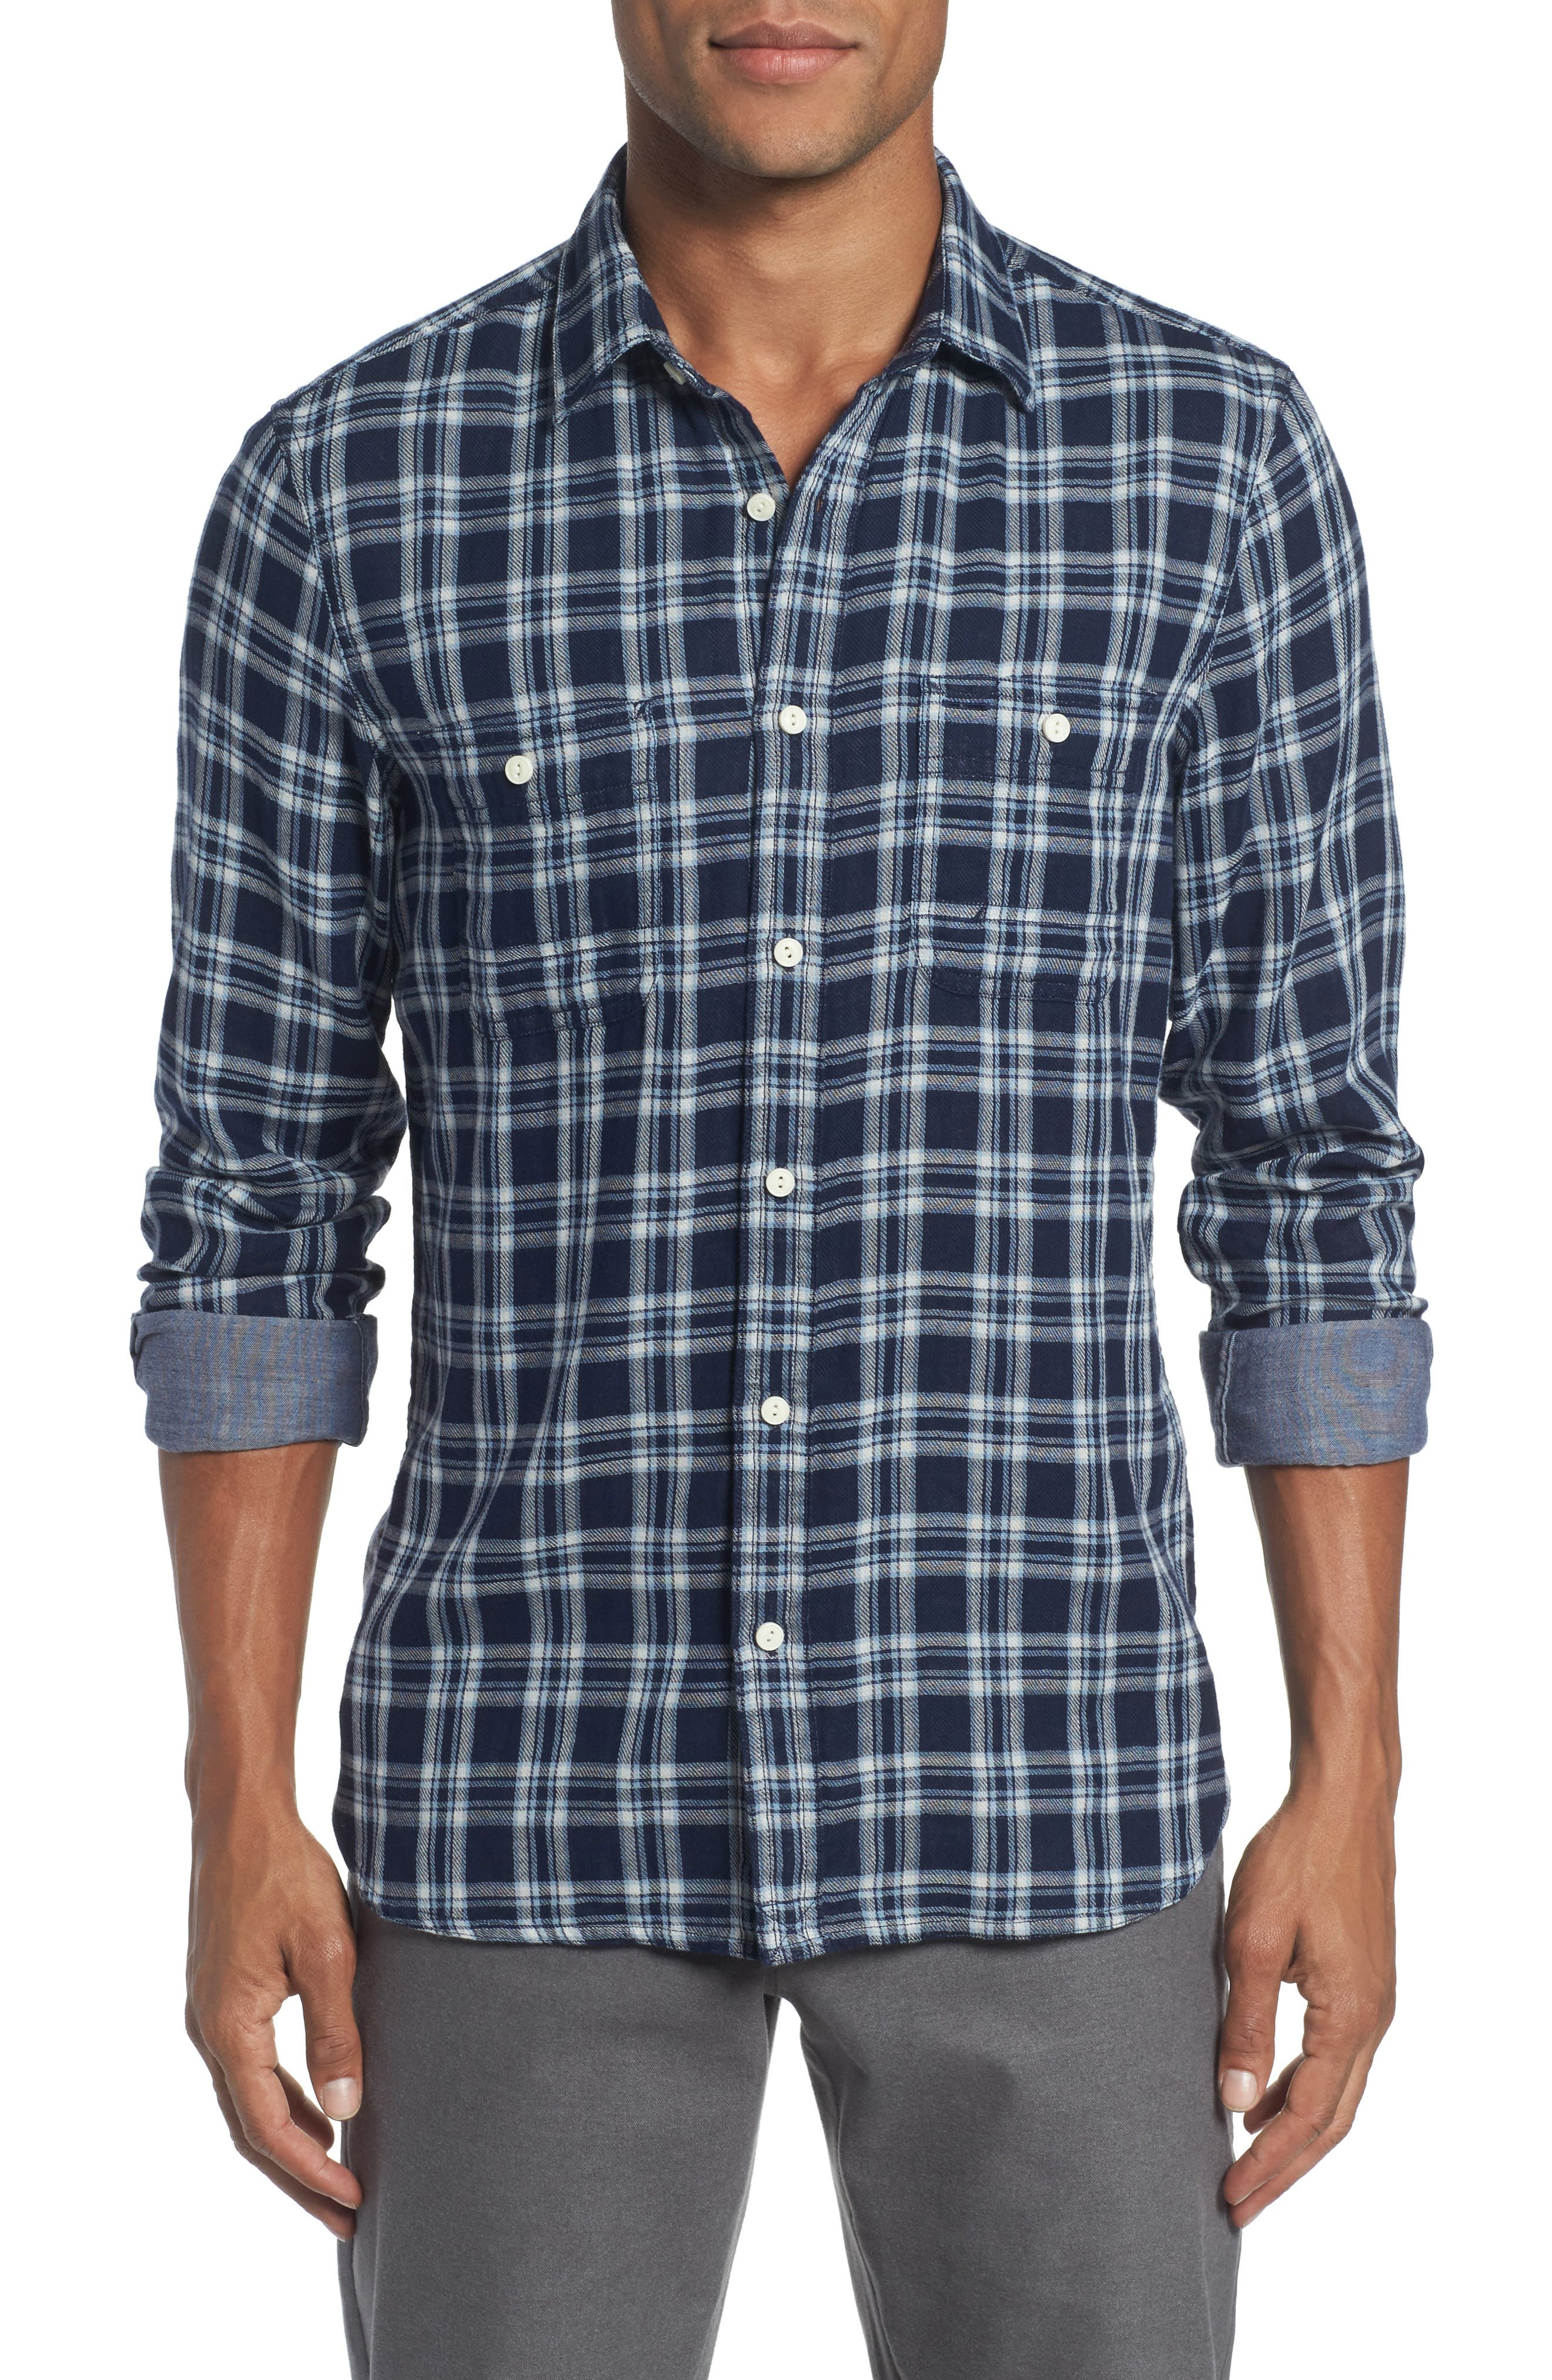 Trim Fit Workwear Duofold Check Sport Shirt,                         Main,                         color, Navy White Chambray Duofold